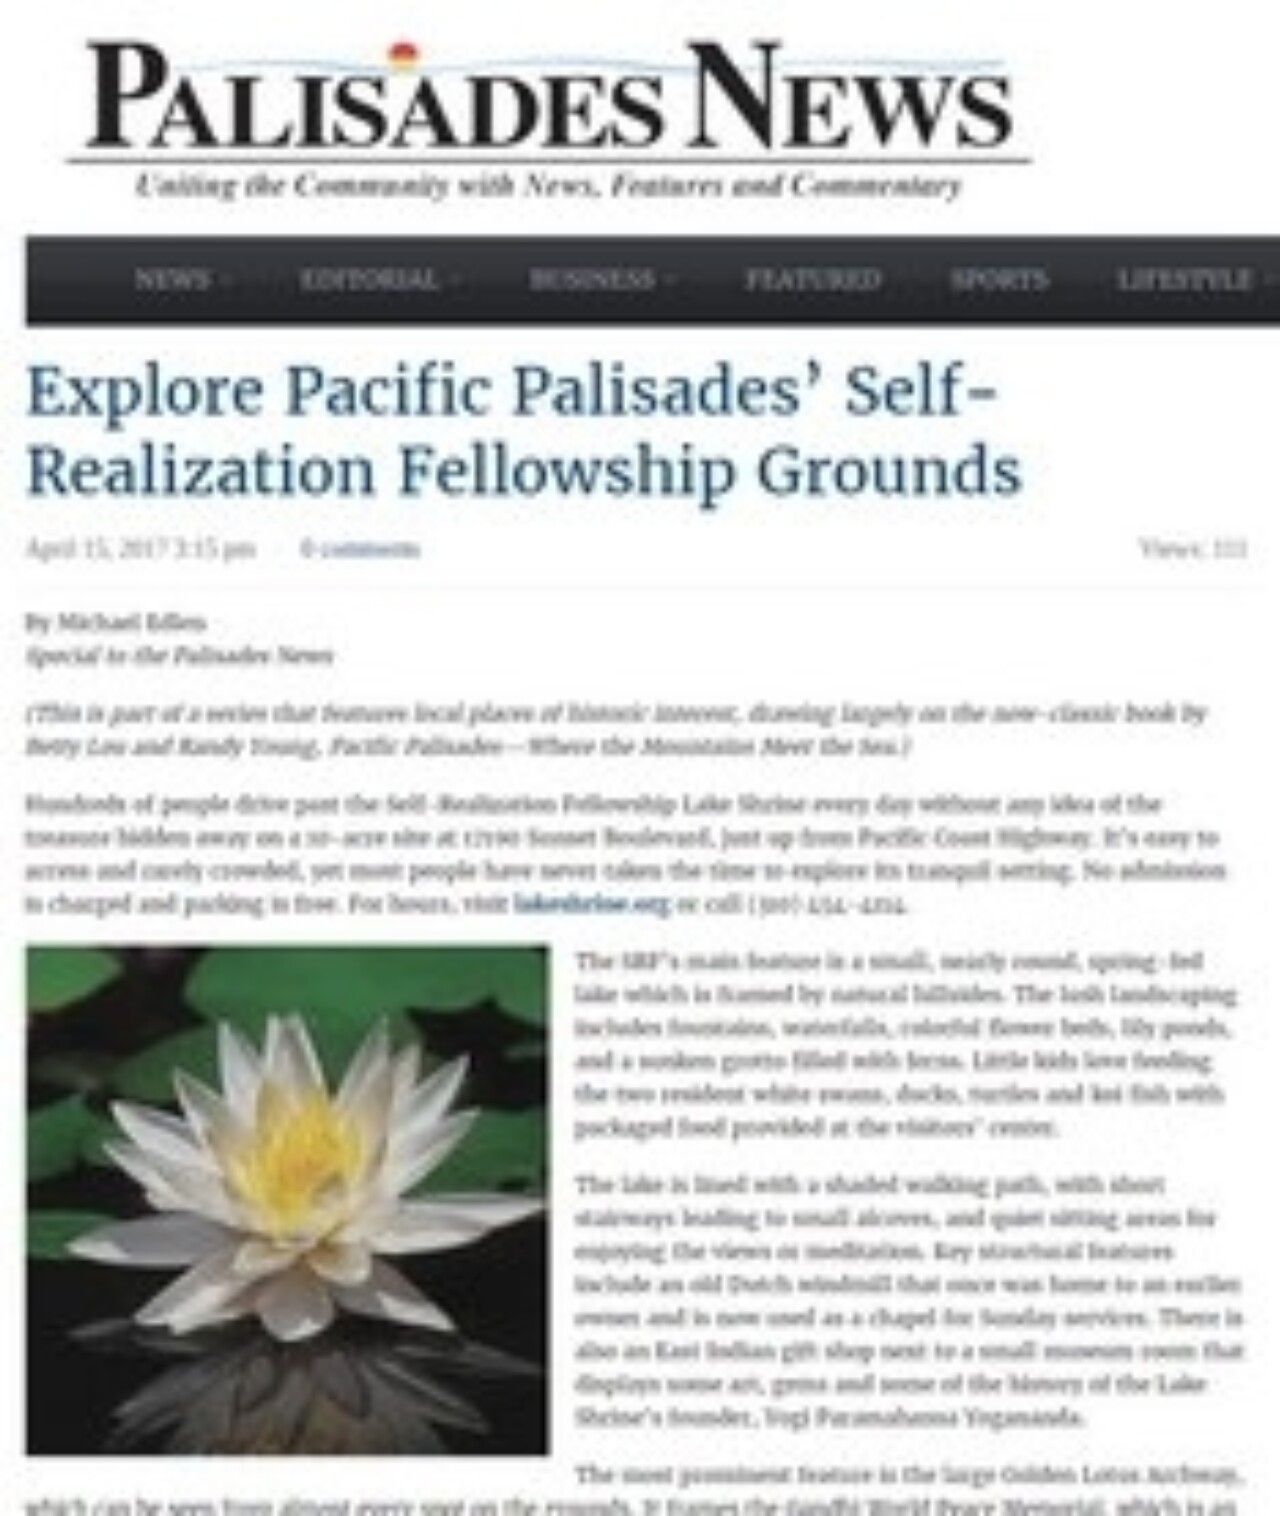 Palisades News features the SRF Lake Shrine